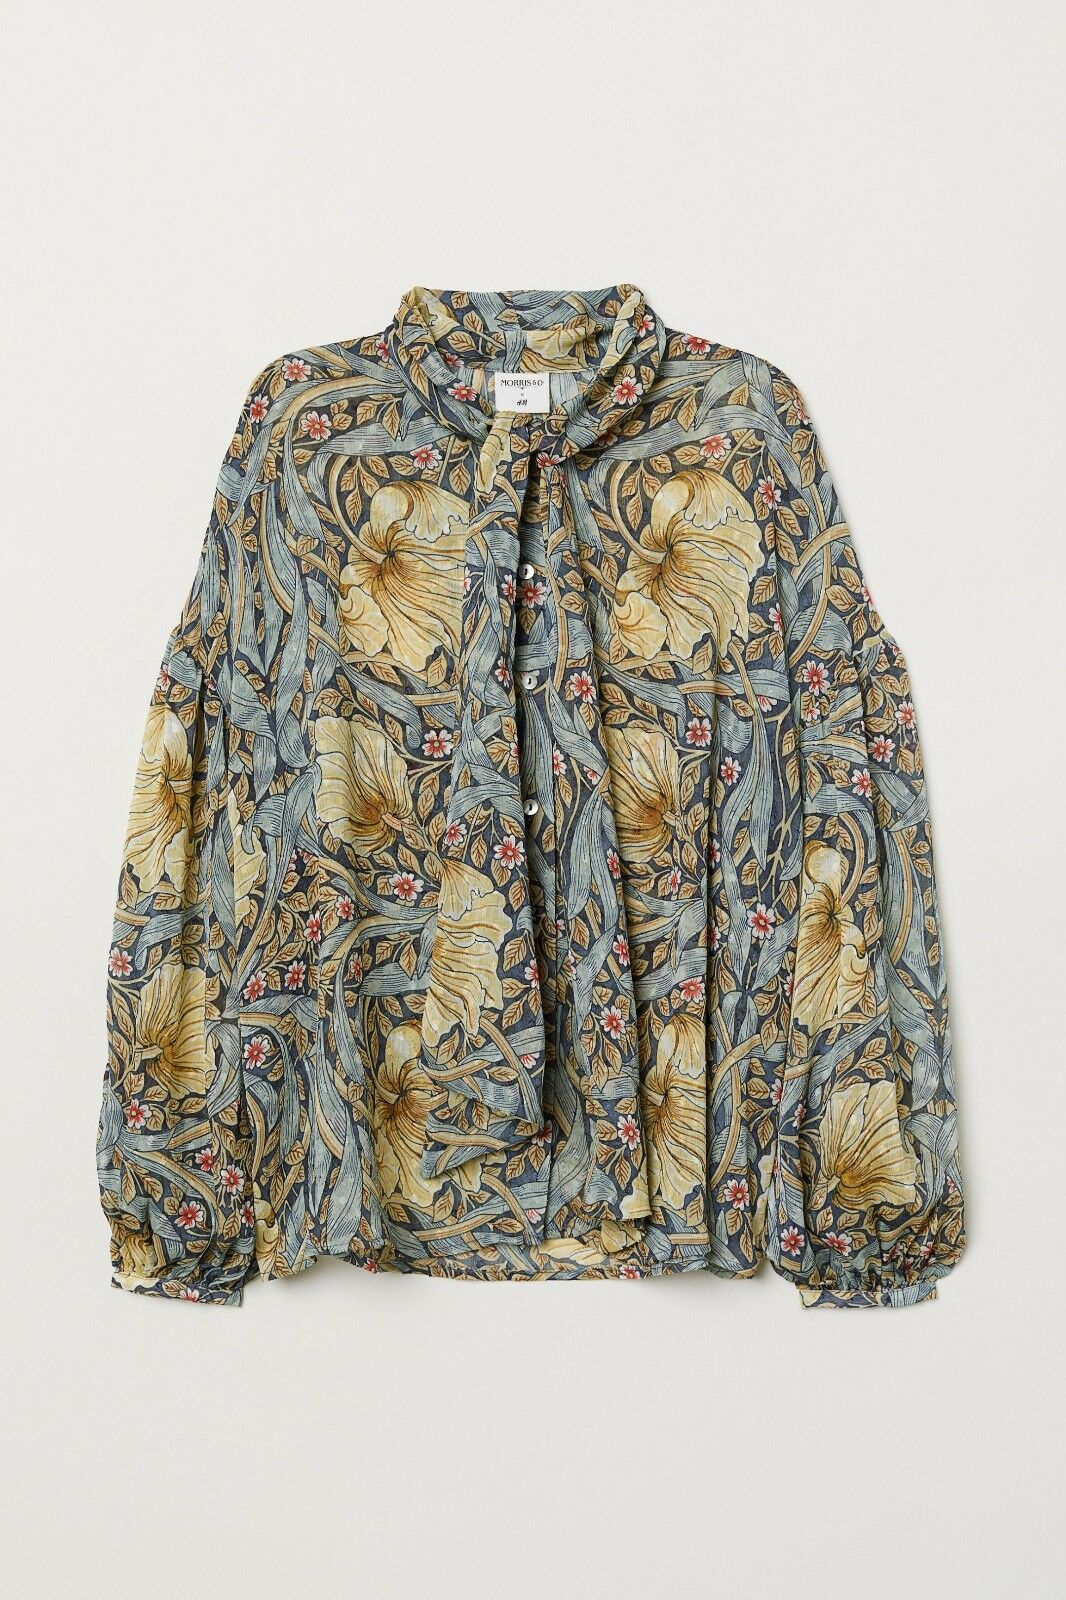 NWT - WILLIAM MORRIS & CO. X H&M blueE YELLOW FLORAL Print BLOUSE, Size 2